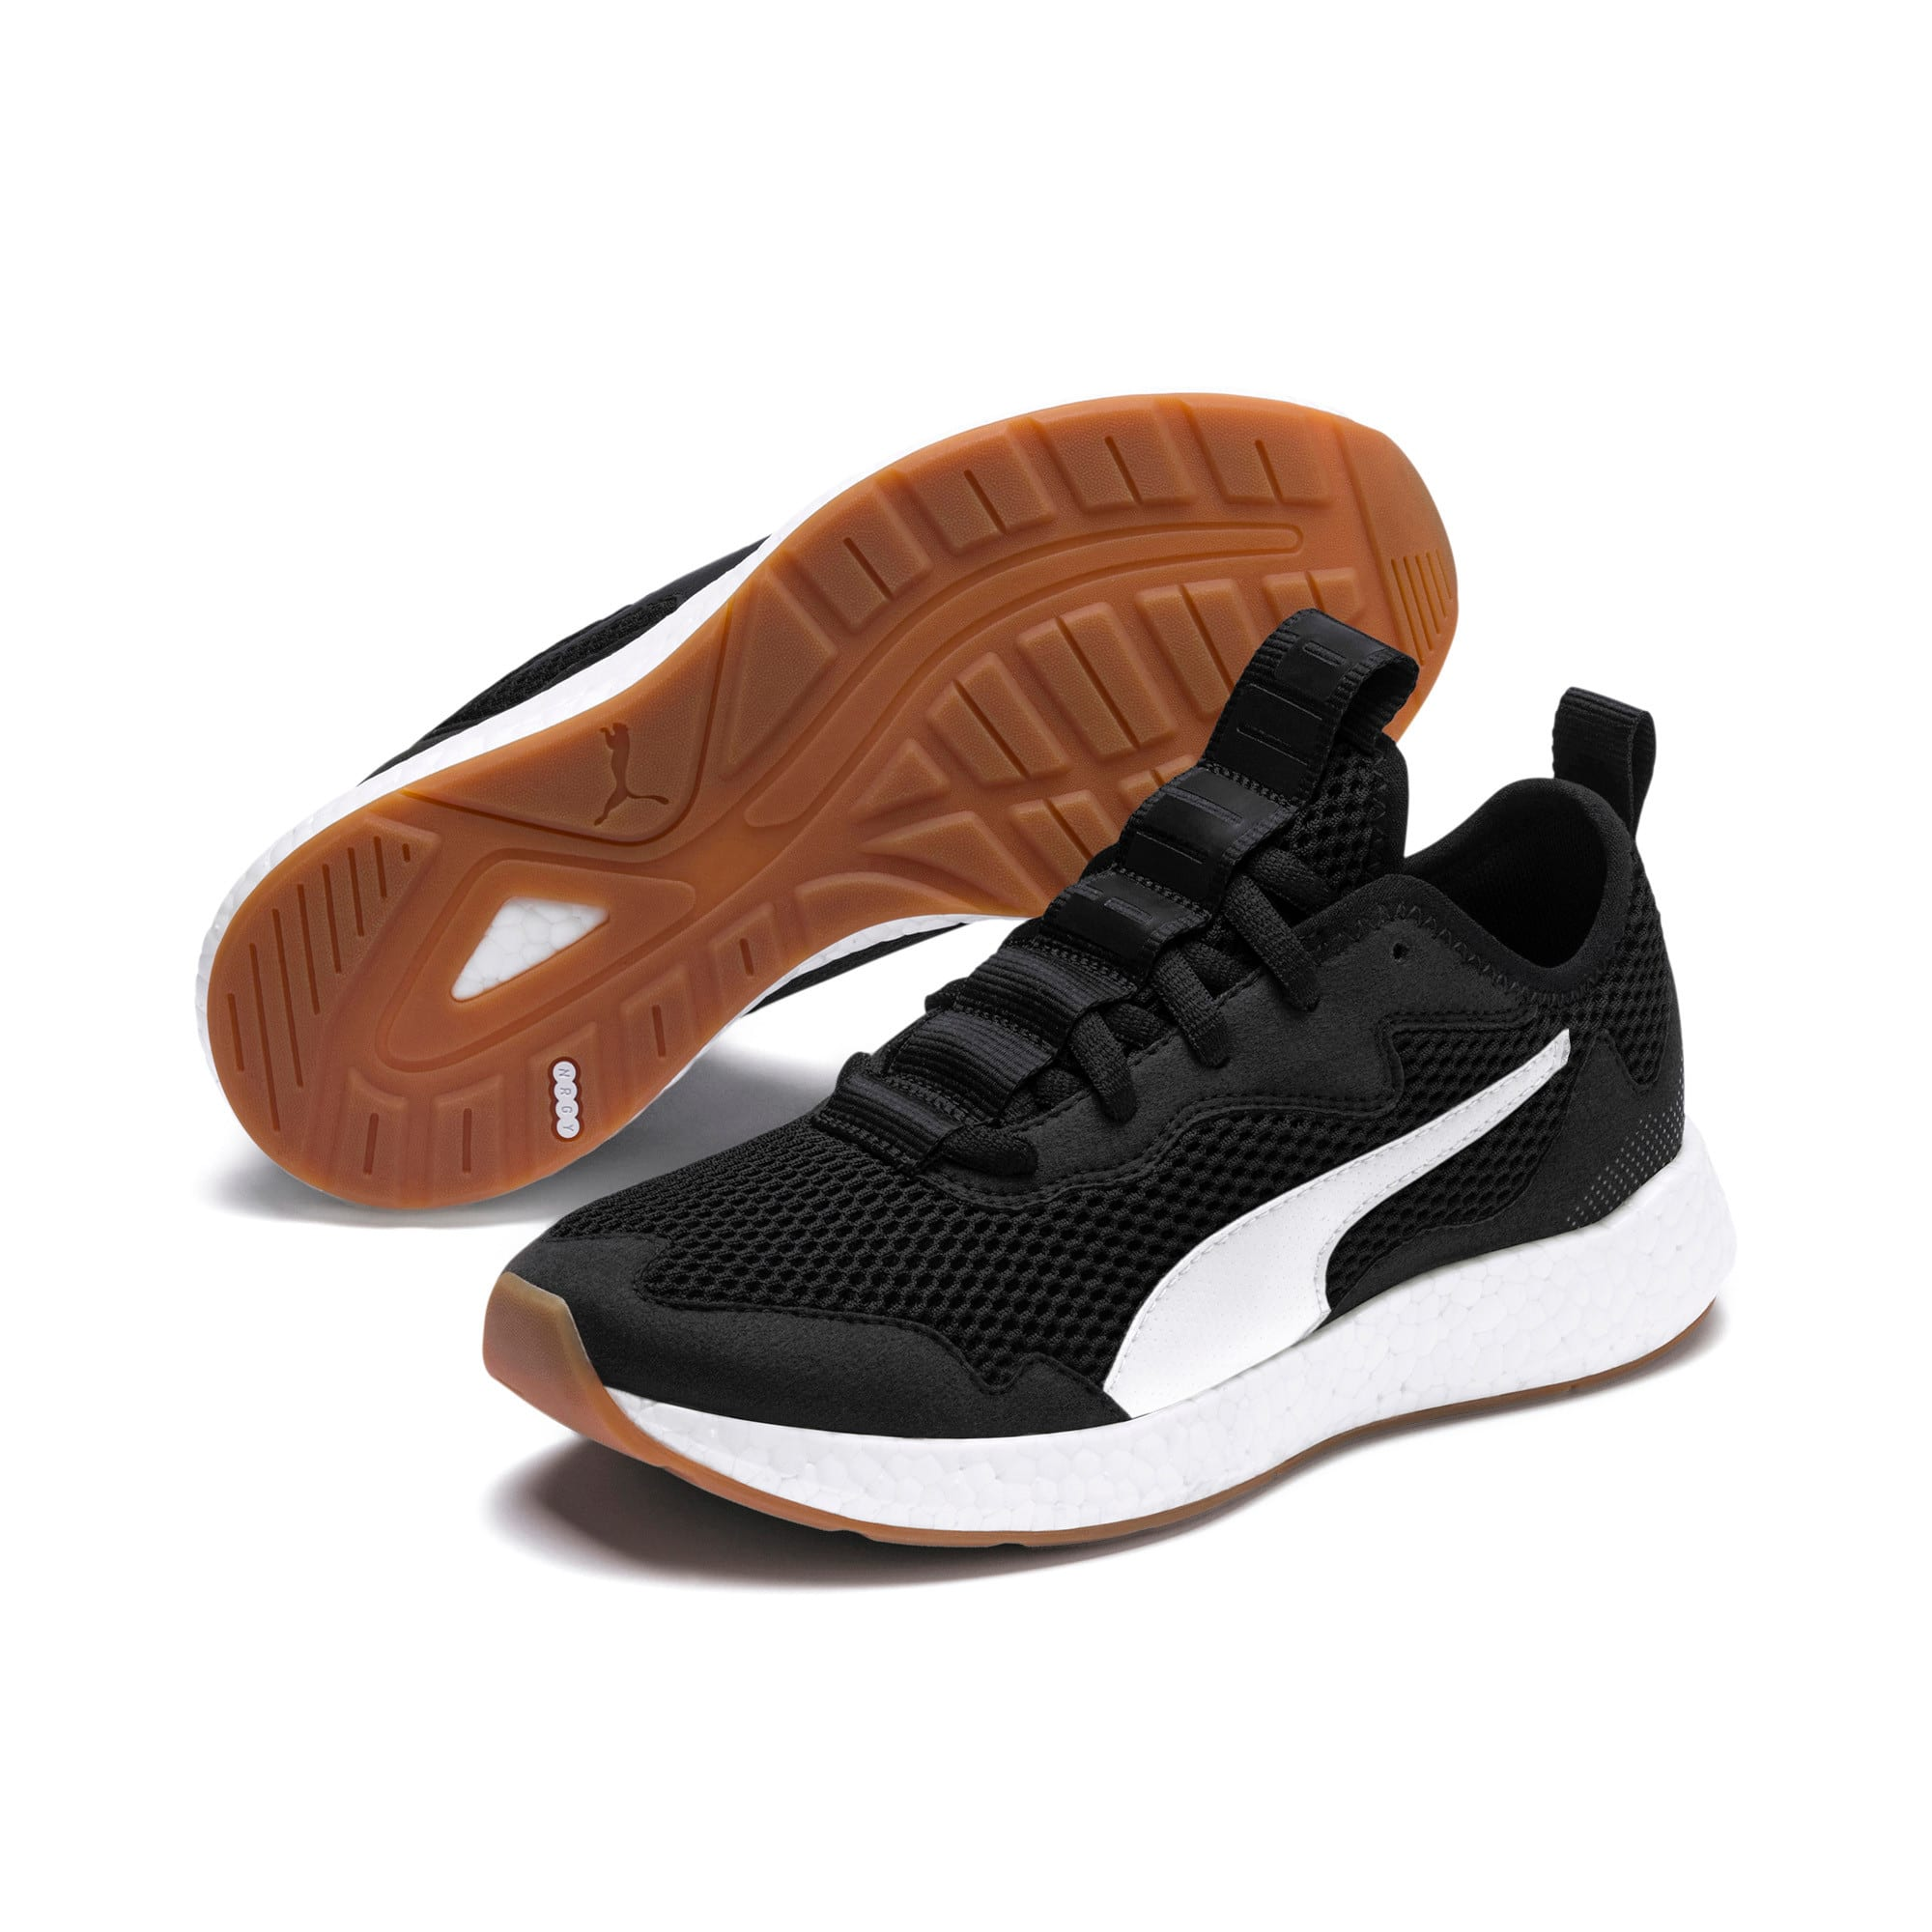 Thumbnail 2 of Chaussure de course NRGY Neko Skim Youth, Puma Black-Puma White, medium